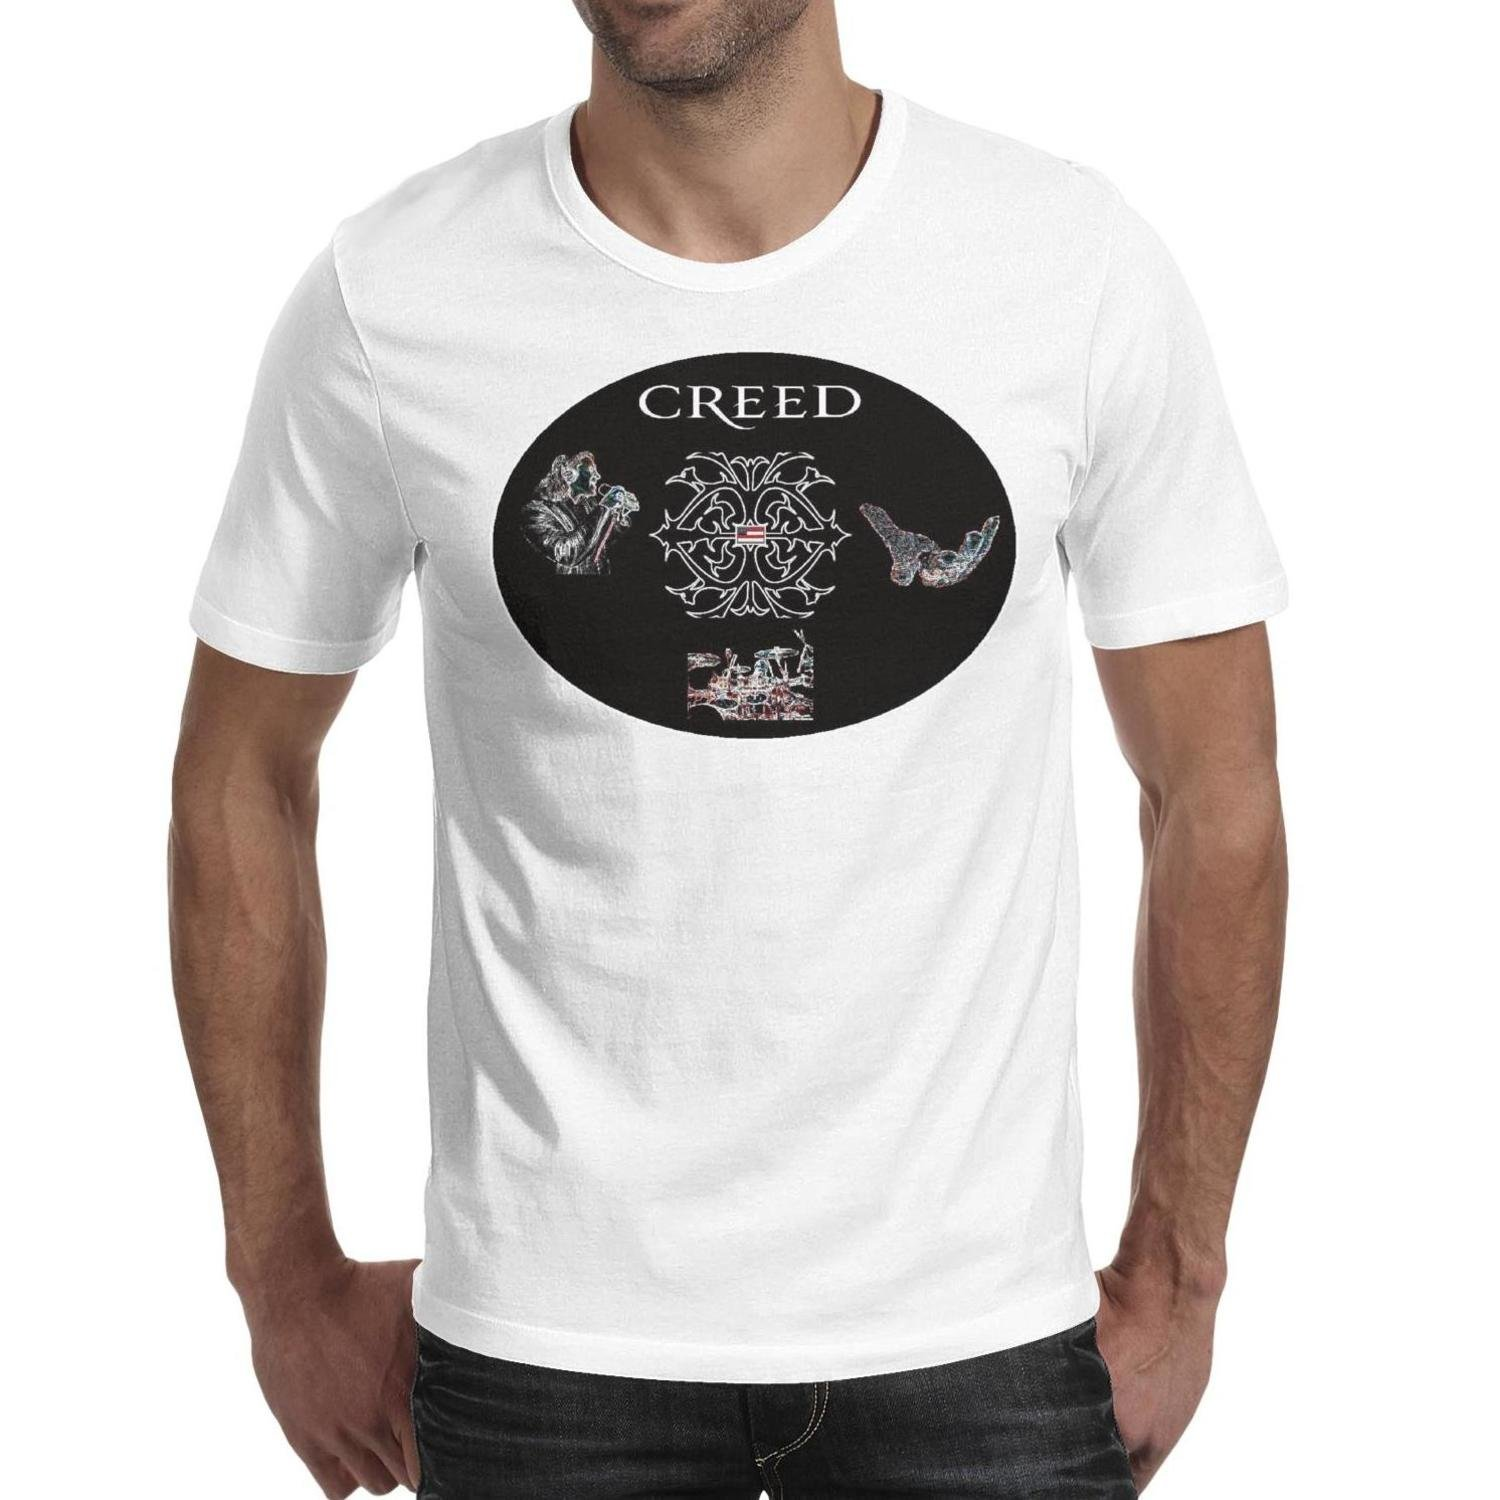 Hndasny T Shirts Cool Musically Short Sleeve T 6207